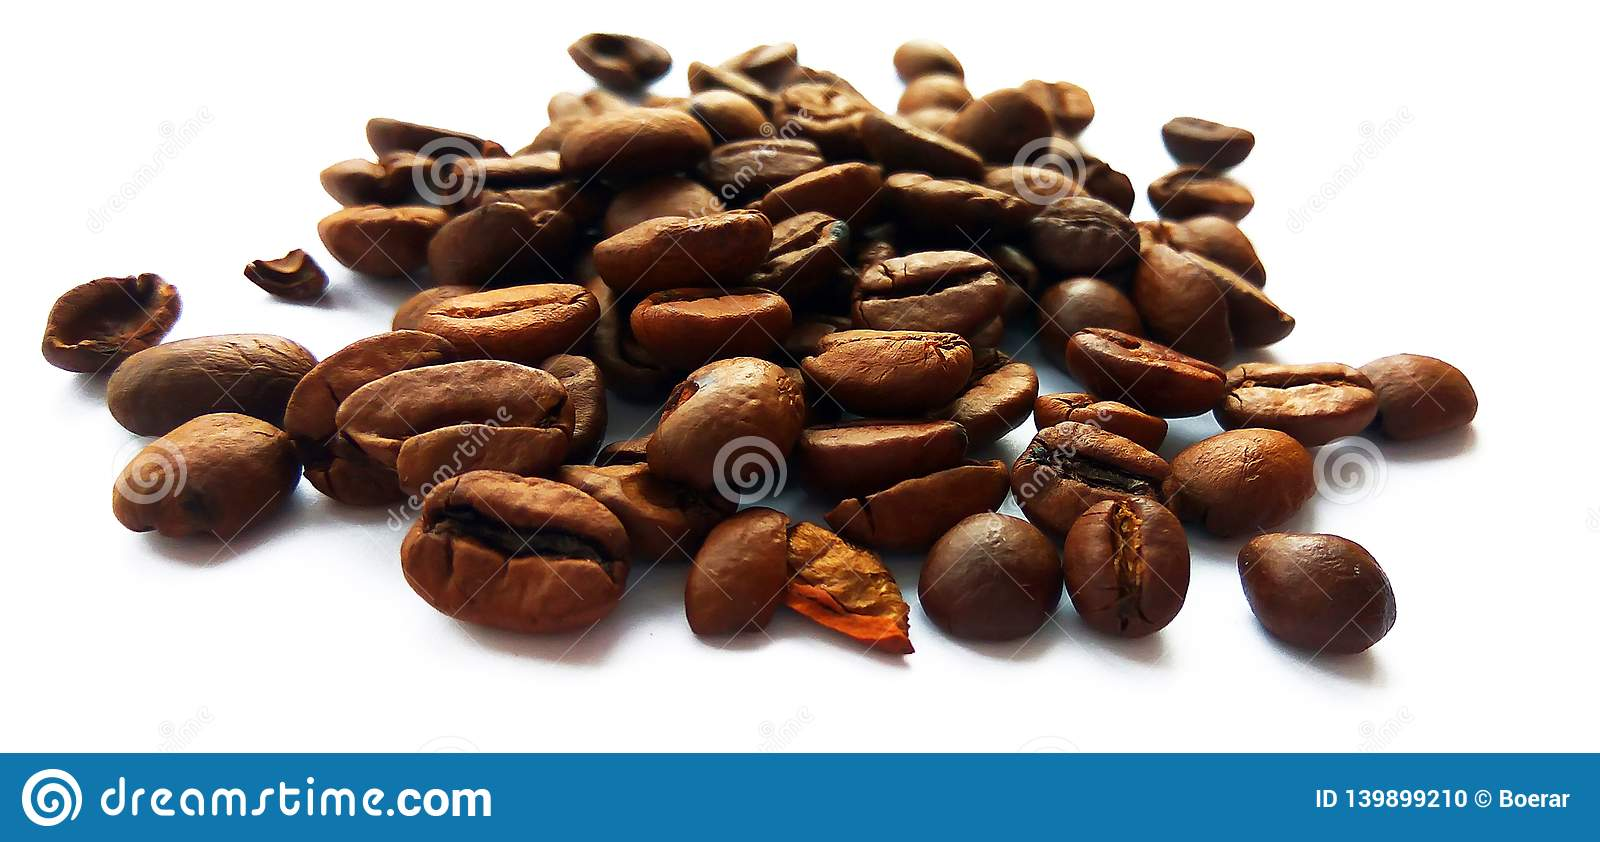 Roasted brown coffee beans and seeds isolated